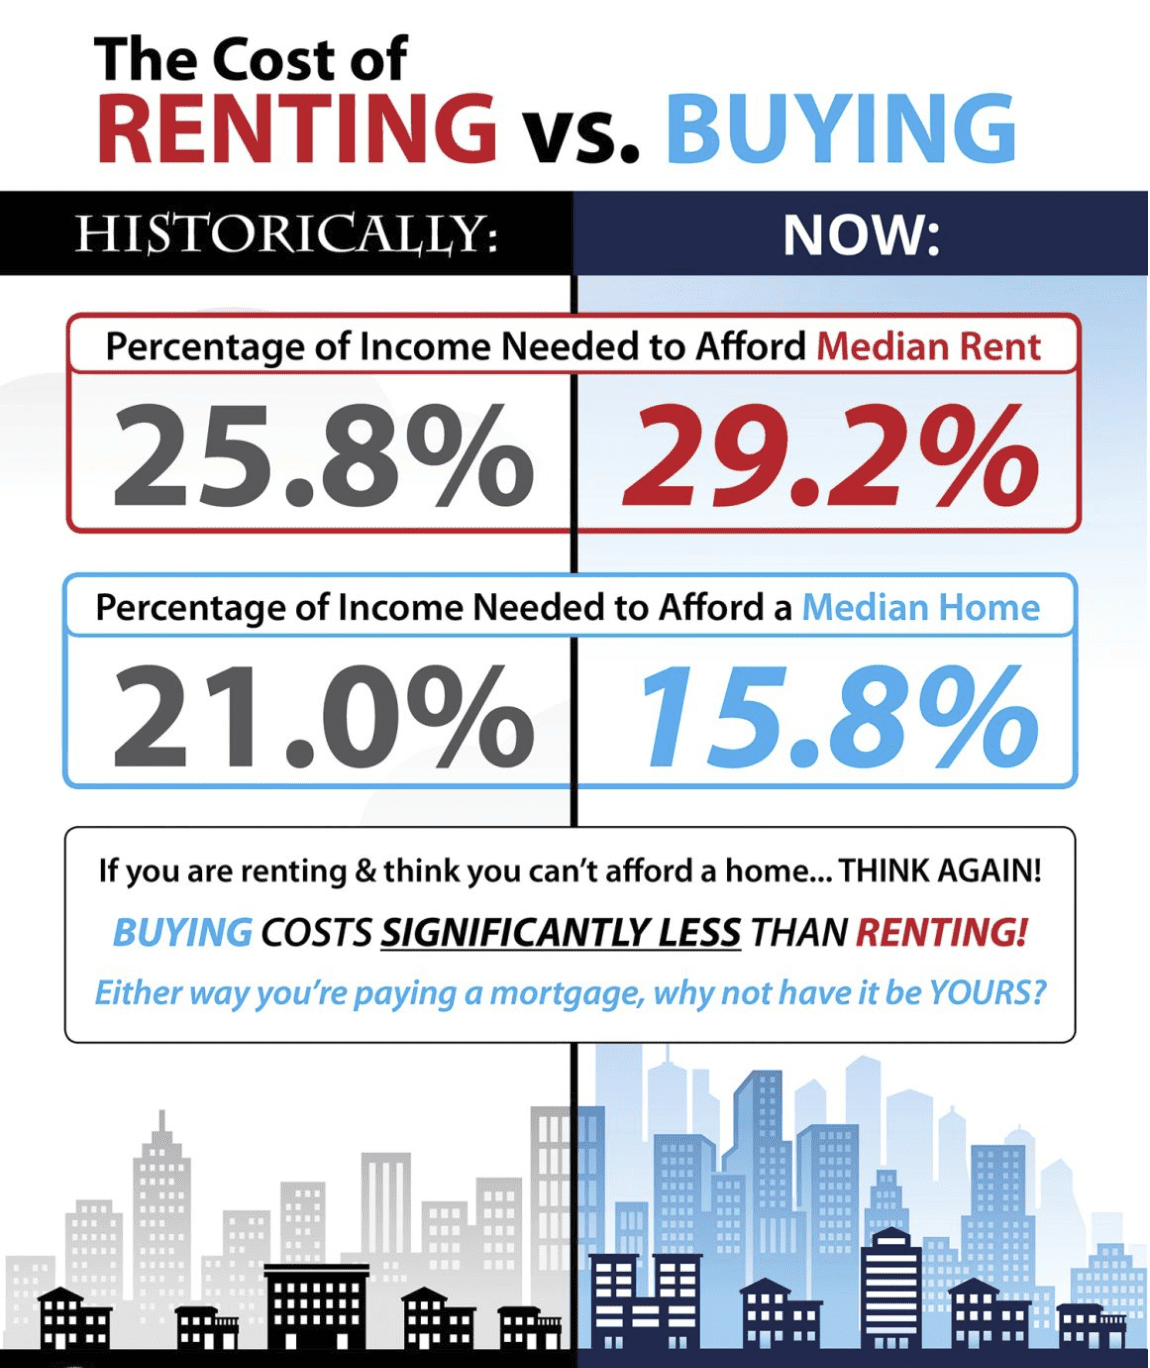 COST OF RENTING VS BUYING - WHICH WAY TO GO?